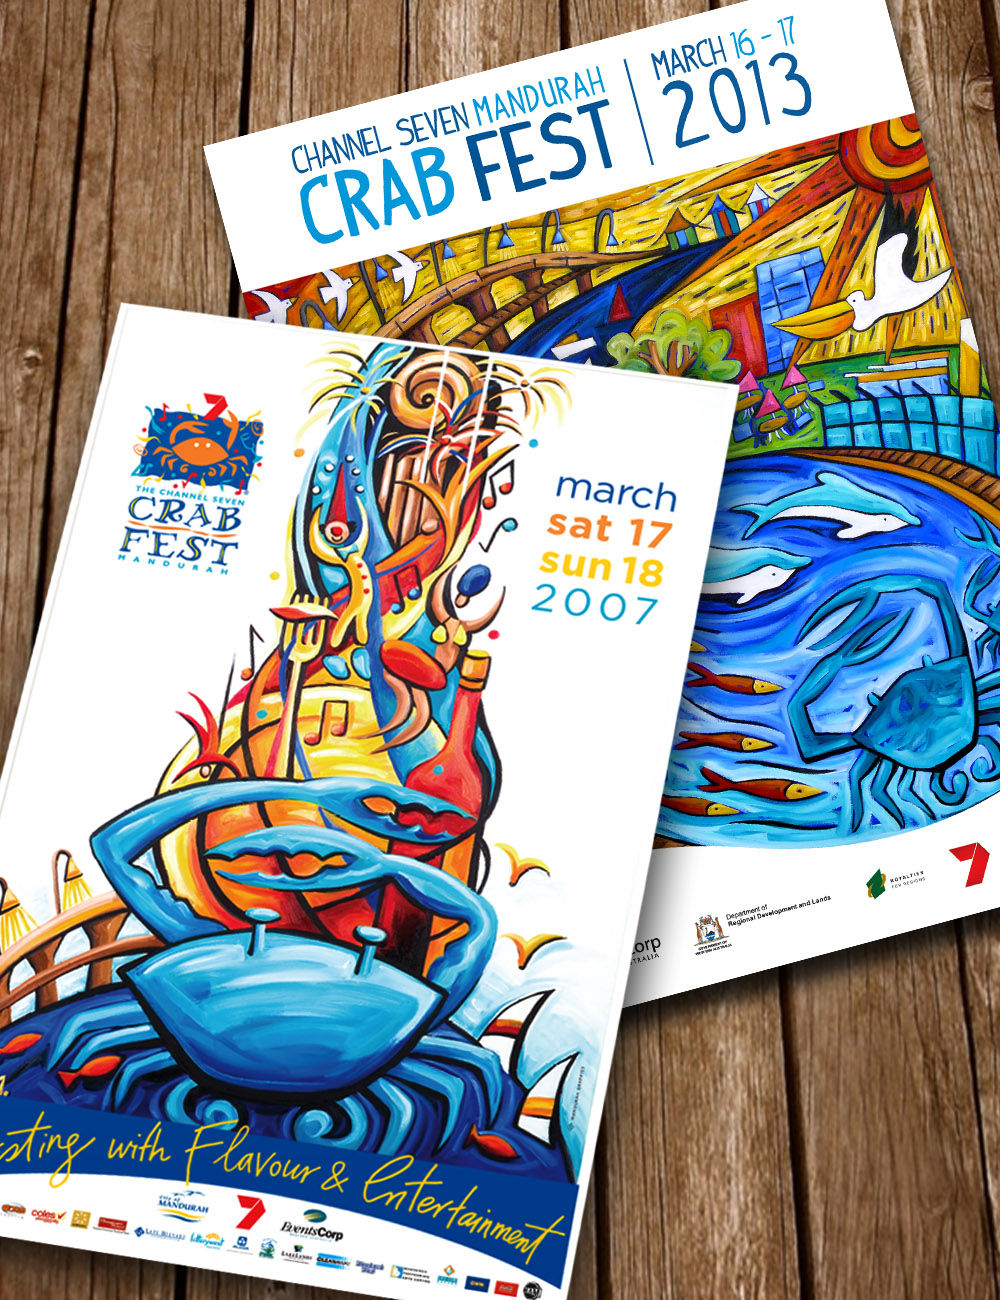 Crab Fest 2007 Promotional Posters